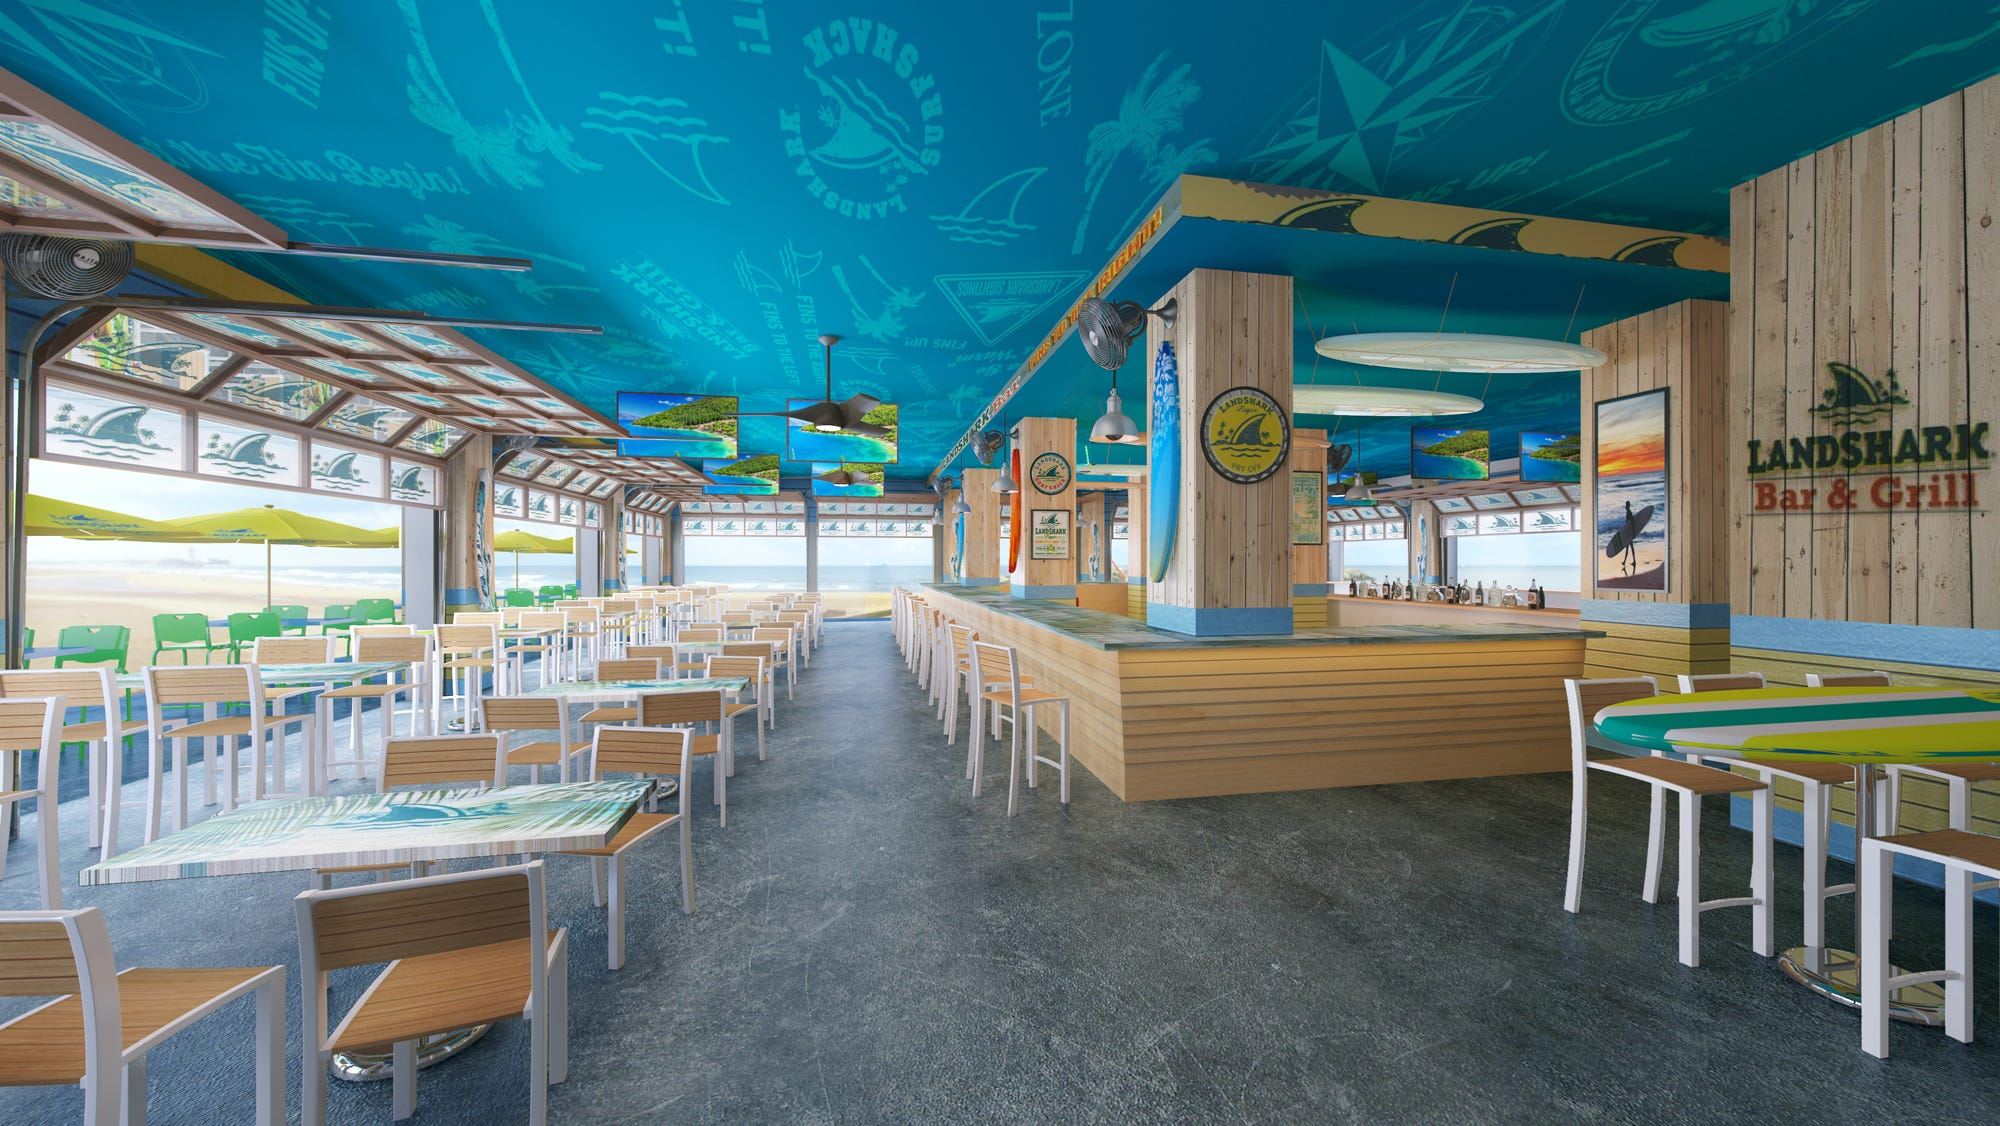 In the Know: Answering your questions about Margaritaville's construction start date and CinéBistro